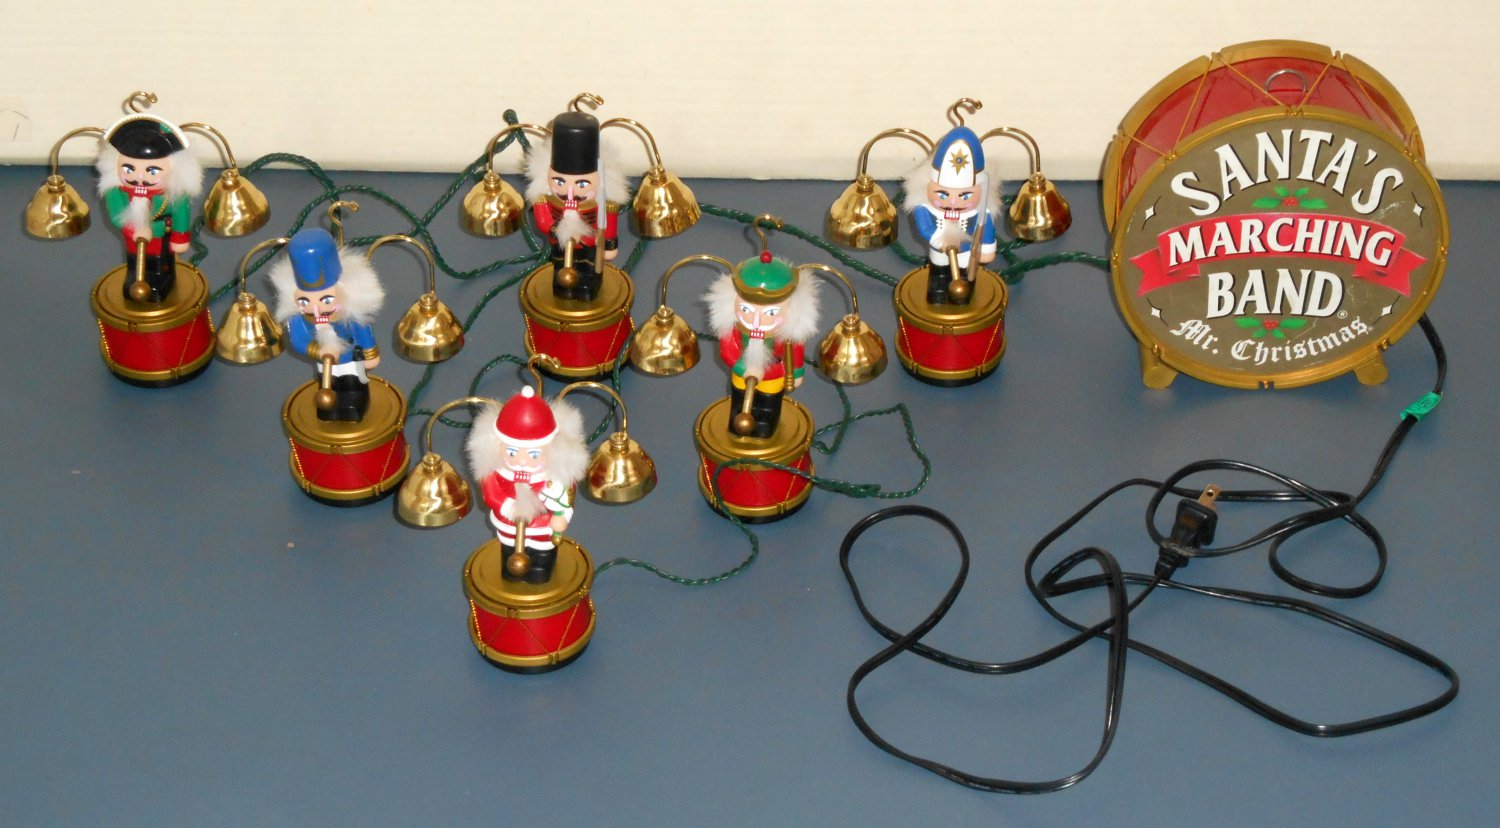 sold out mr christmas santas marching band animated musical nutcracker 12 brass bells 35 carols